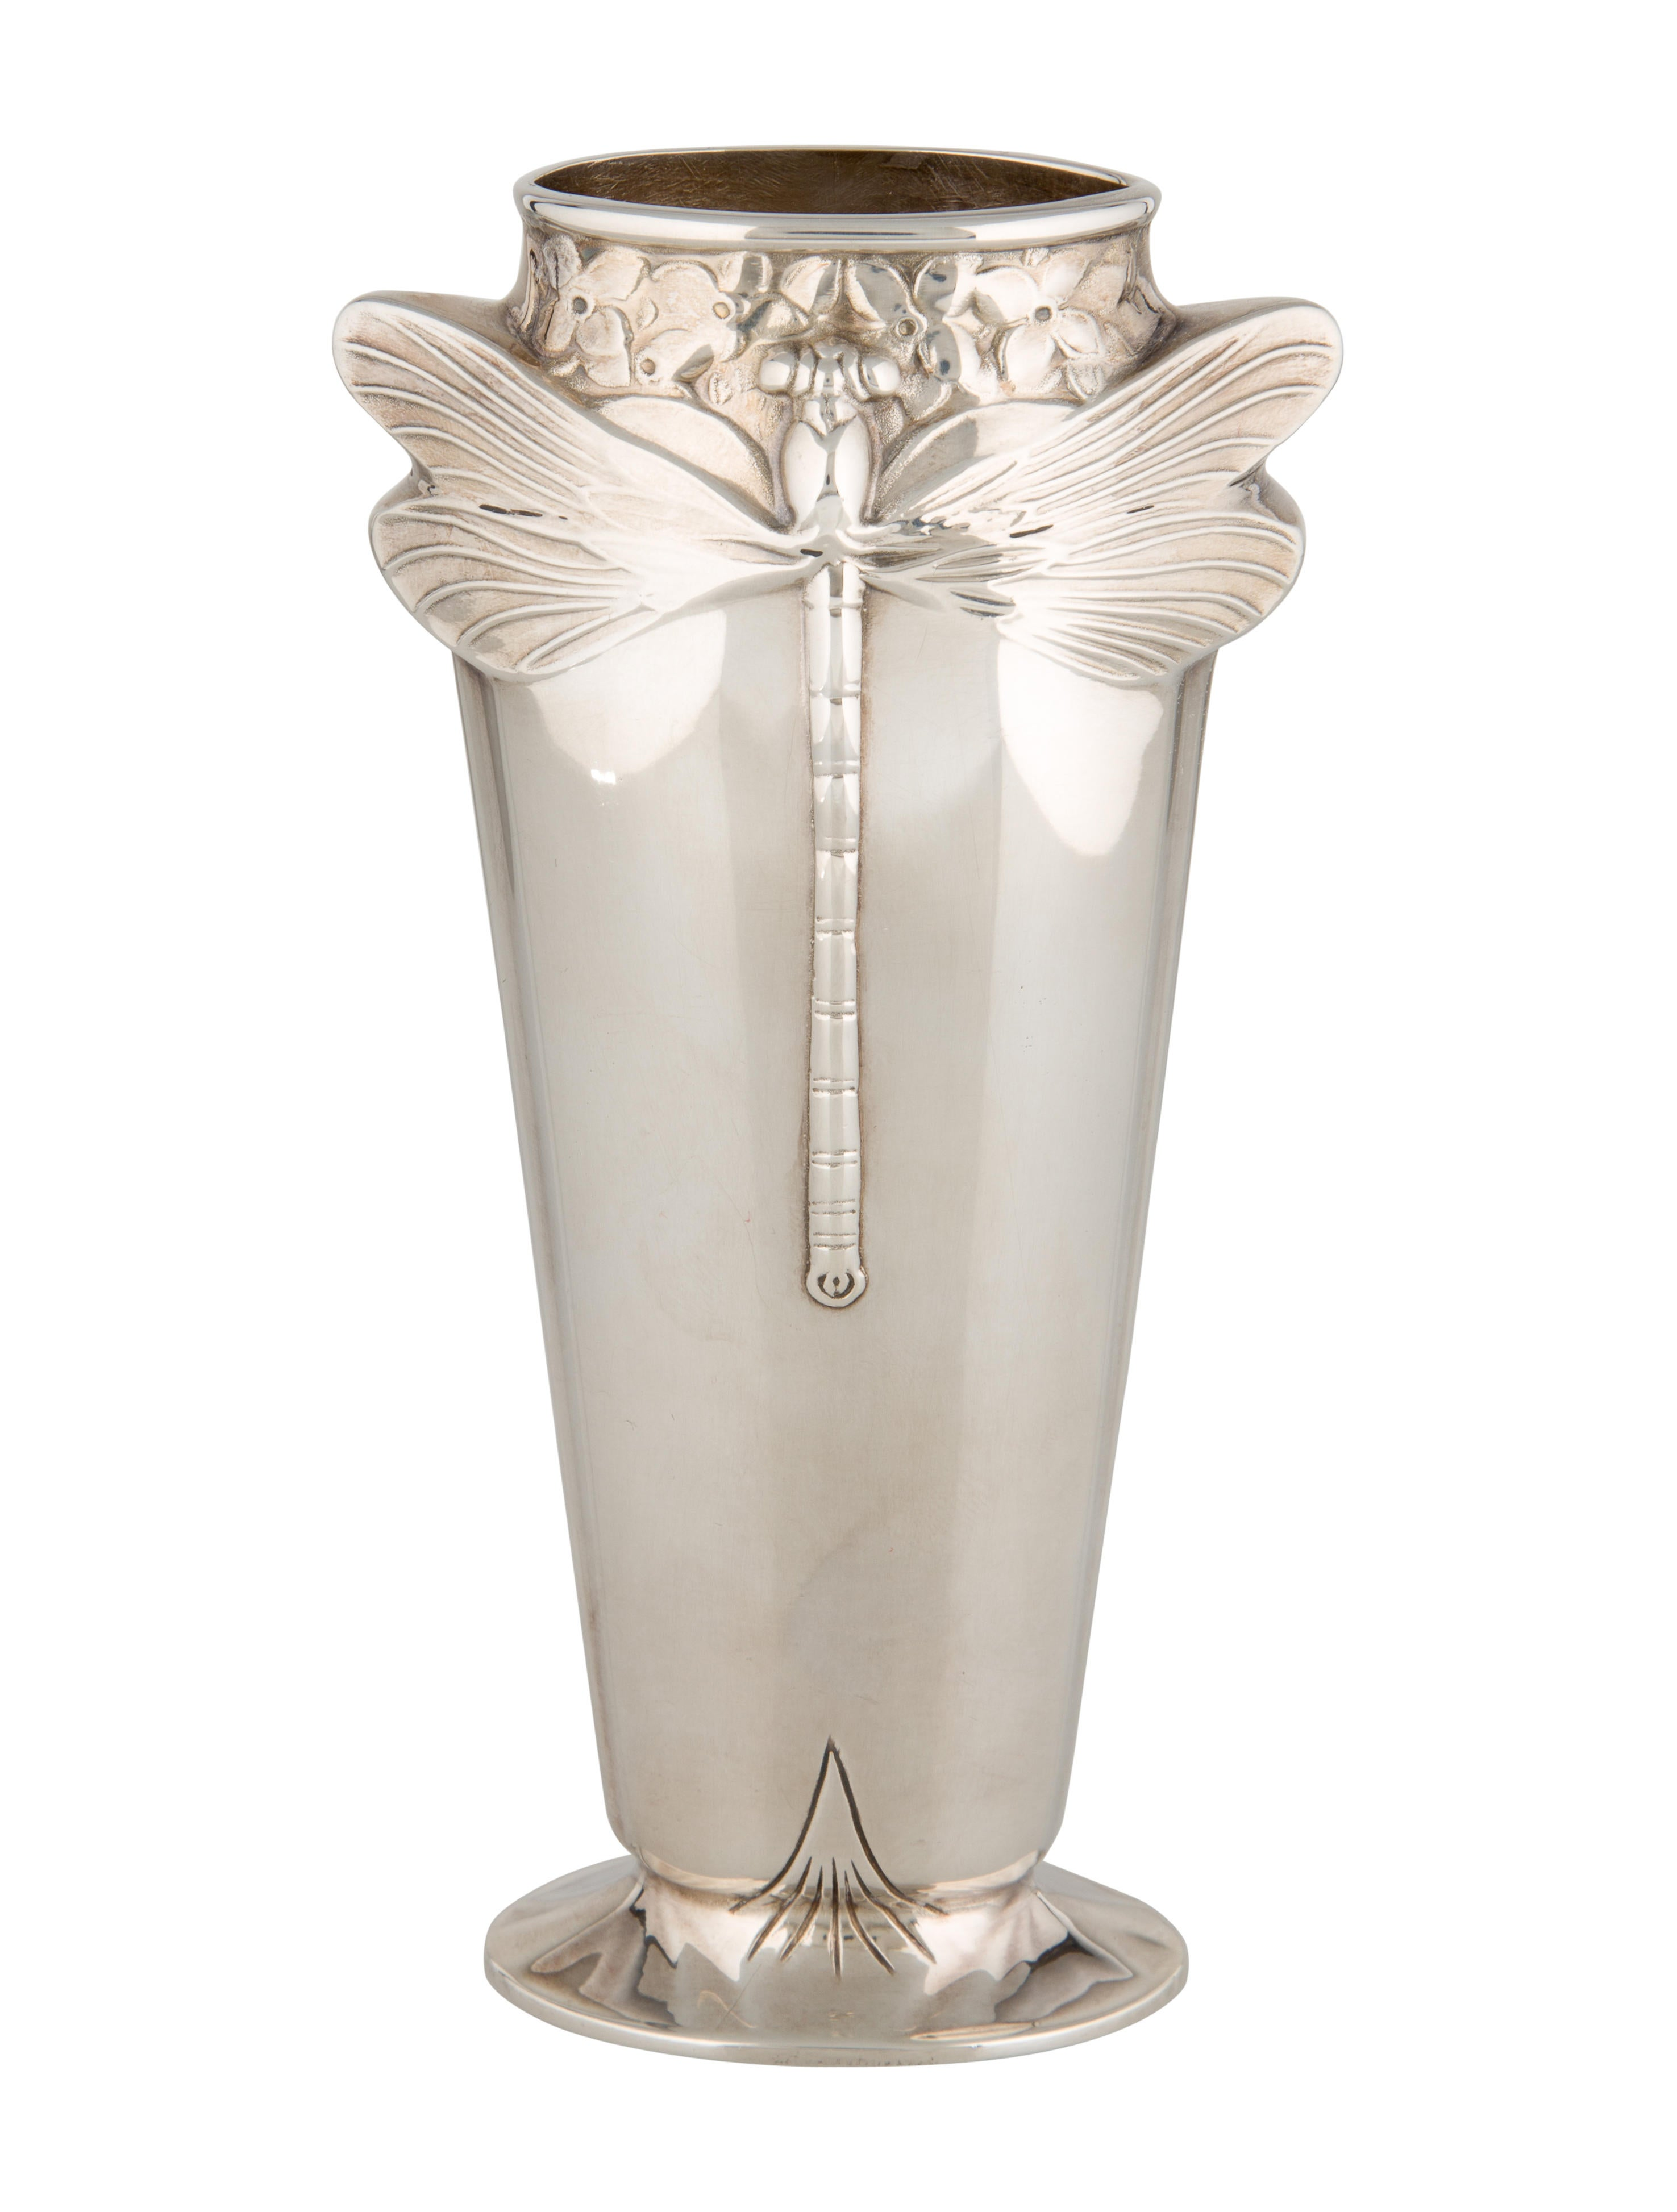 Christofle dragonfly vase decor and accessories for Home decor and accents